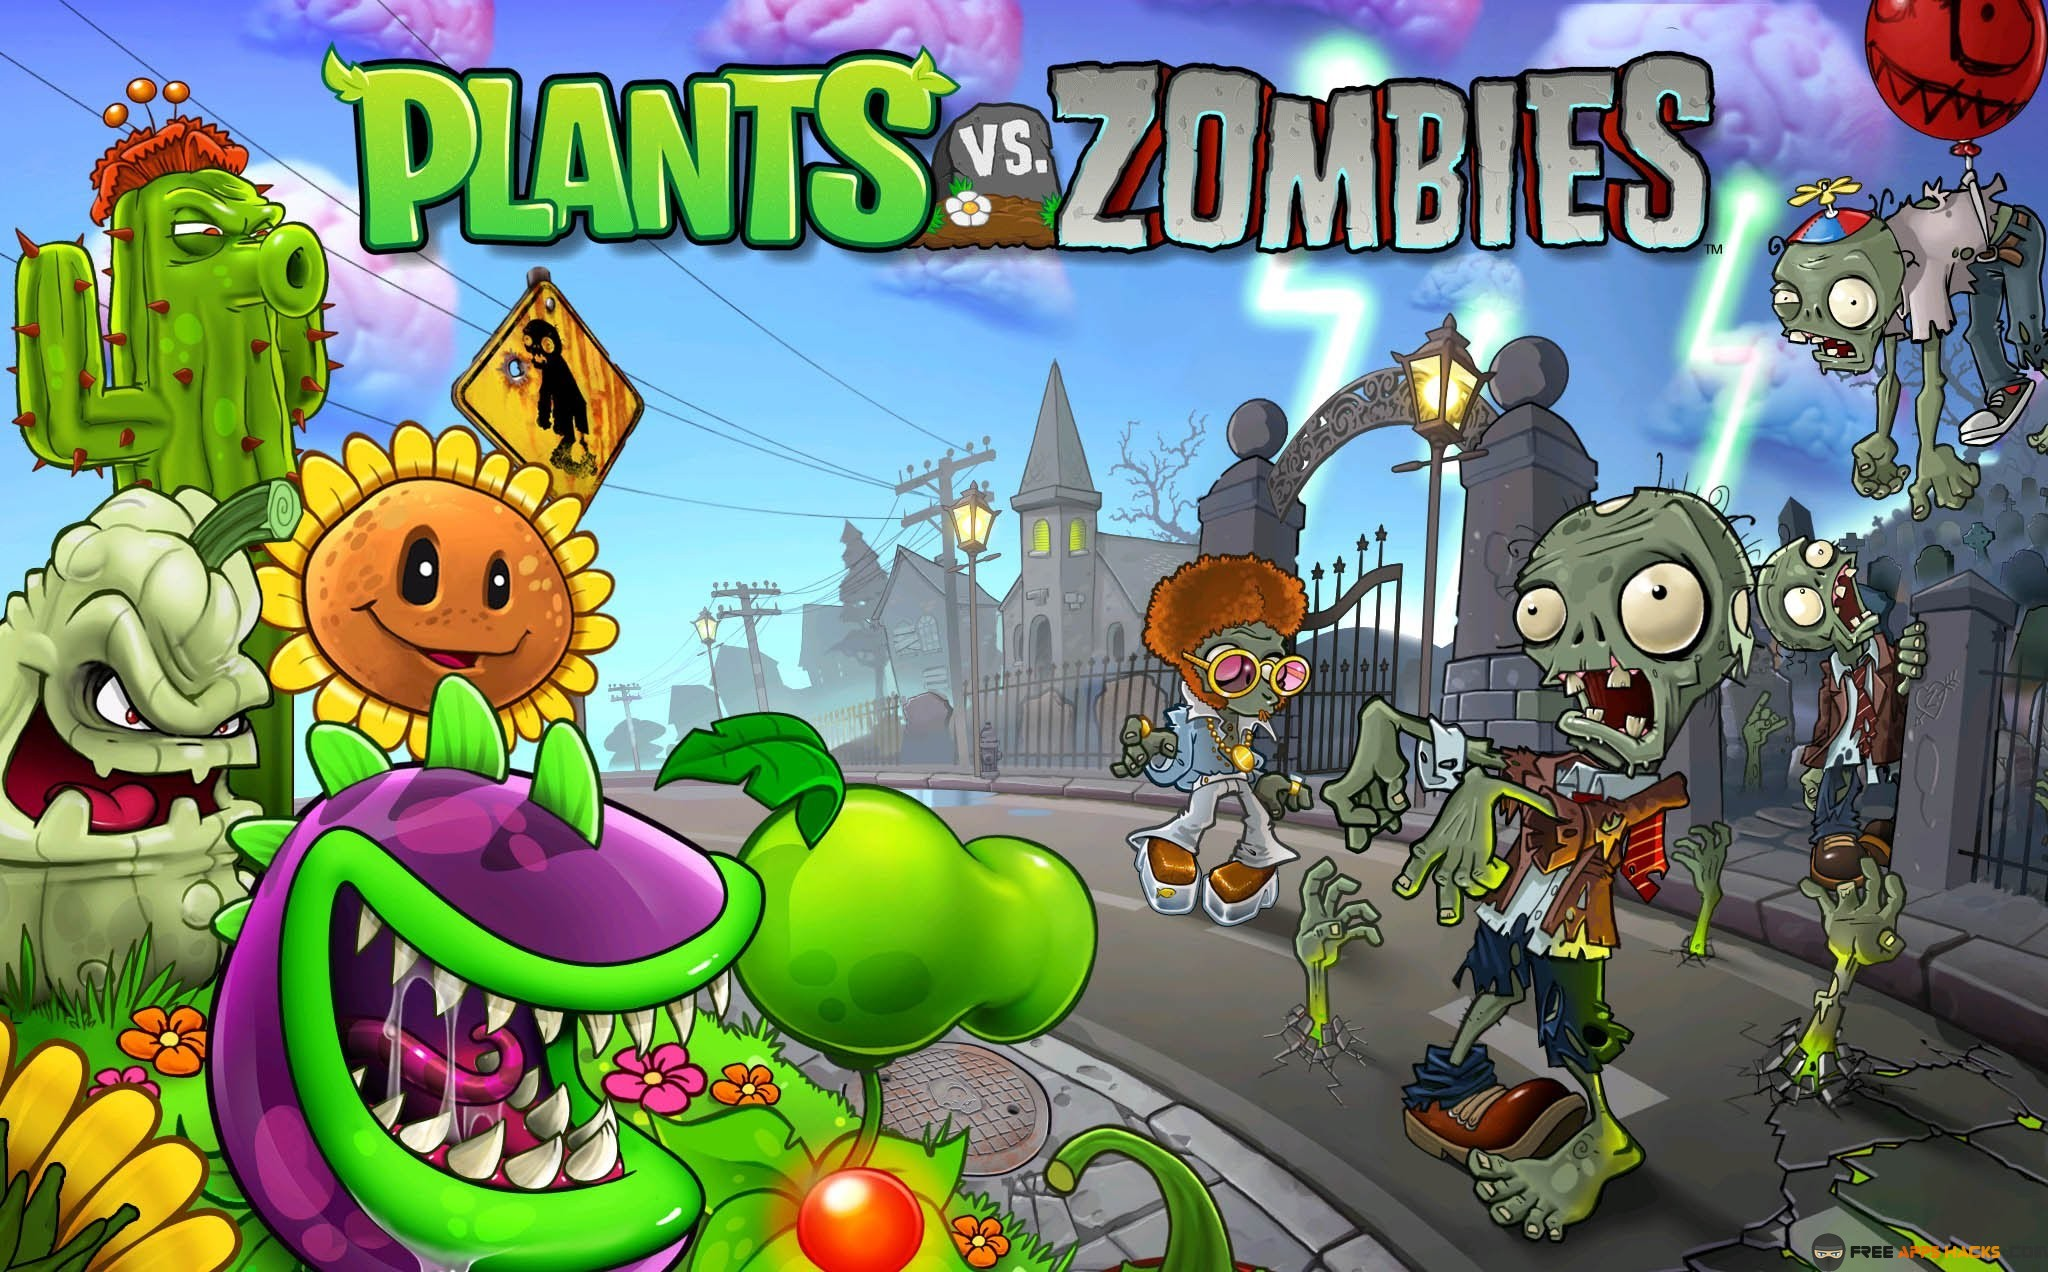 Plants Vs Zombies Free Modded Apk Infinite Sun Android App Free App Hacks